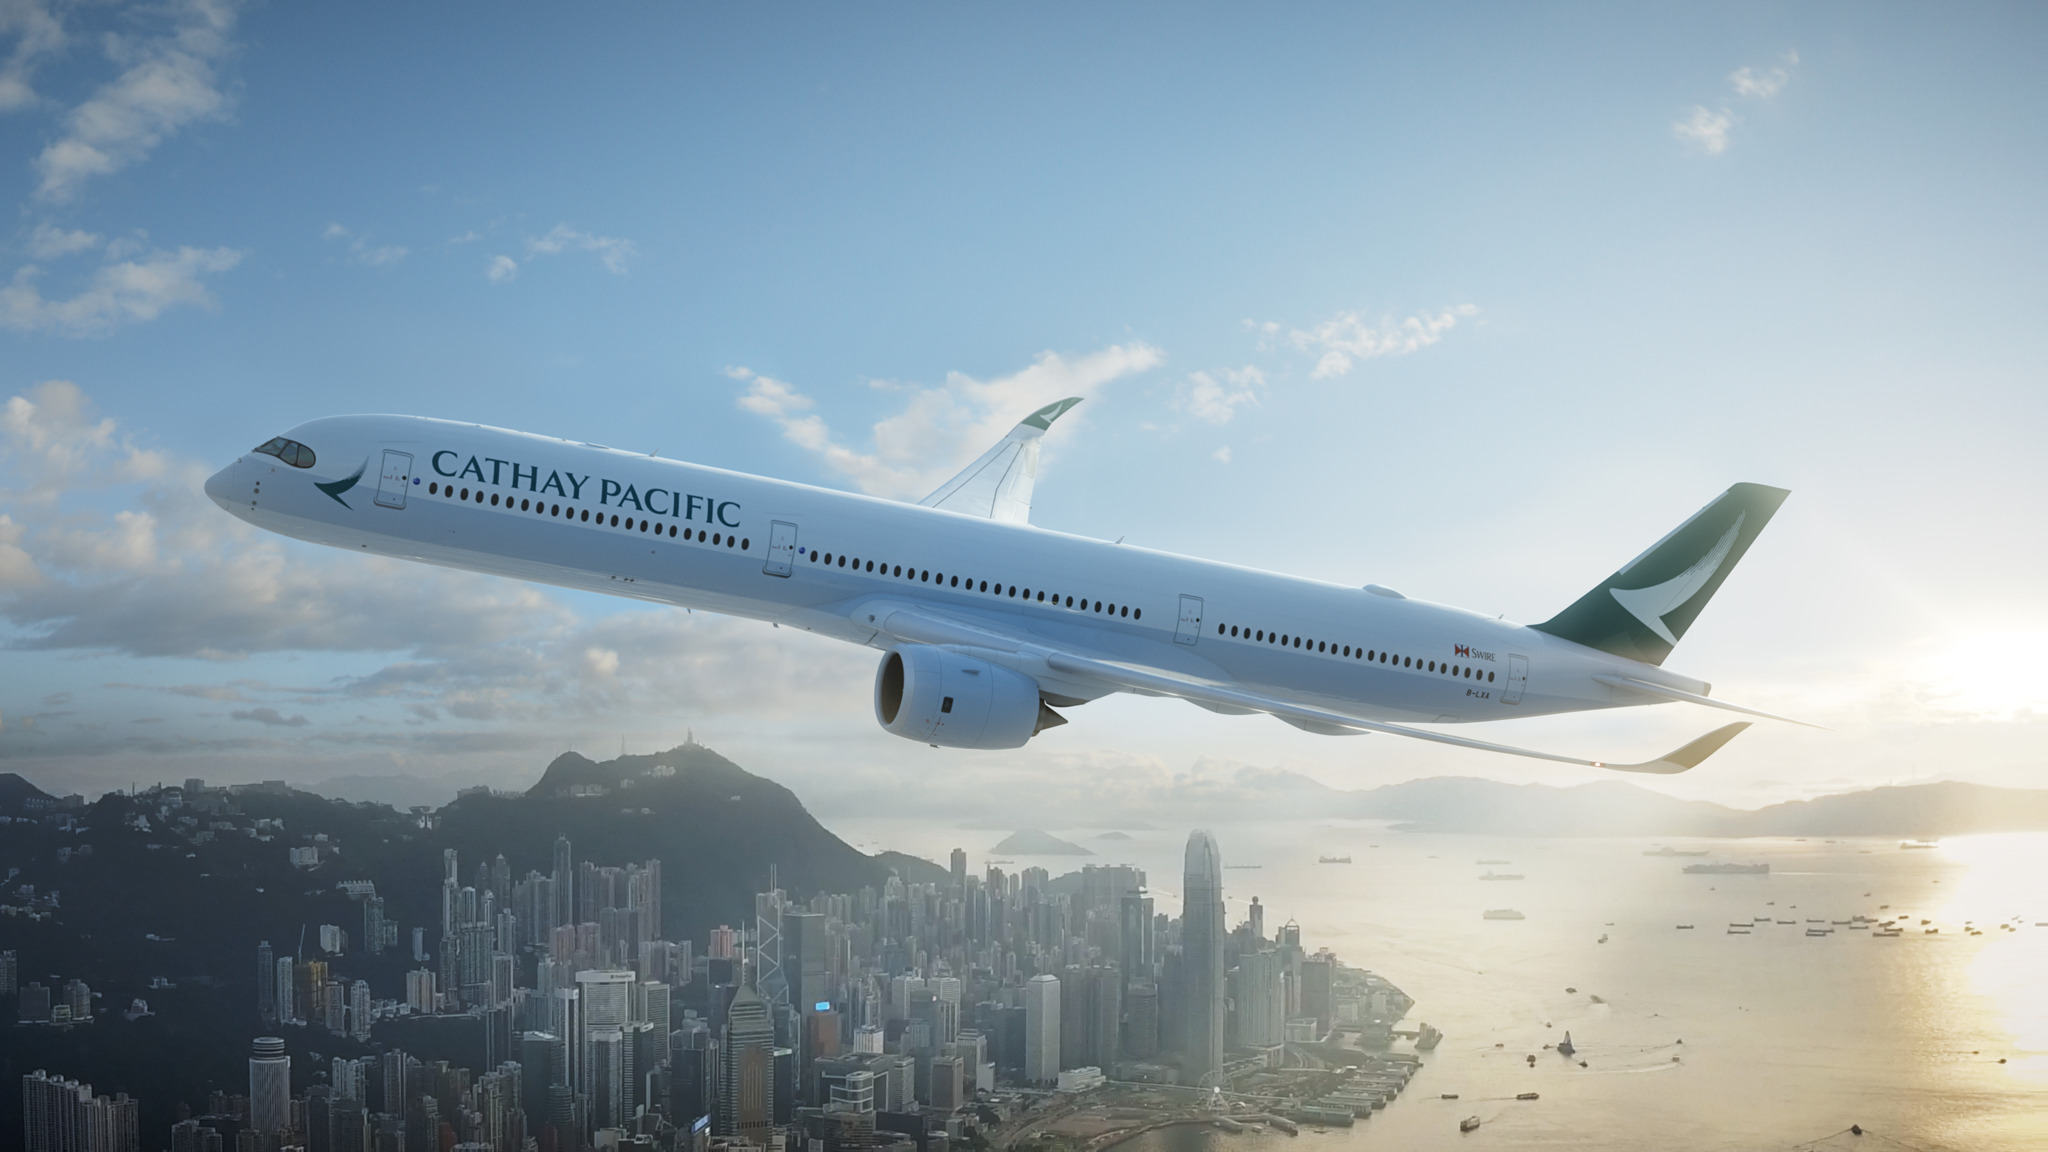 Cathay Pacific plane flying over a city